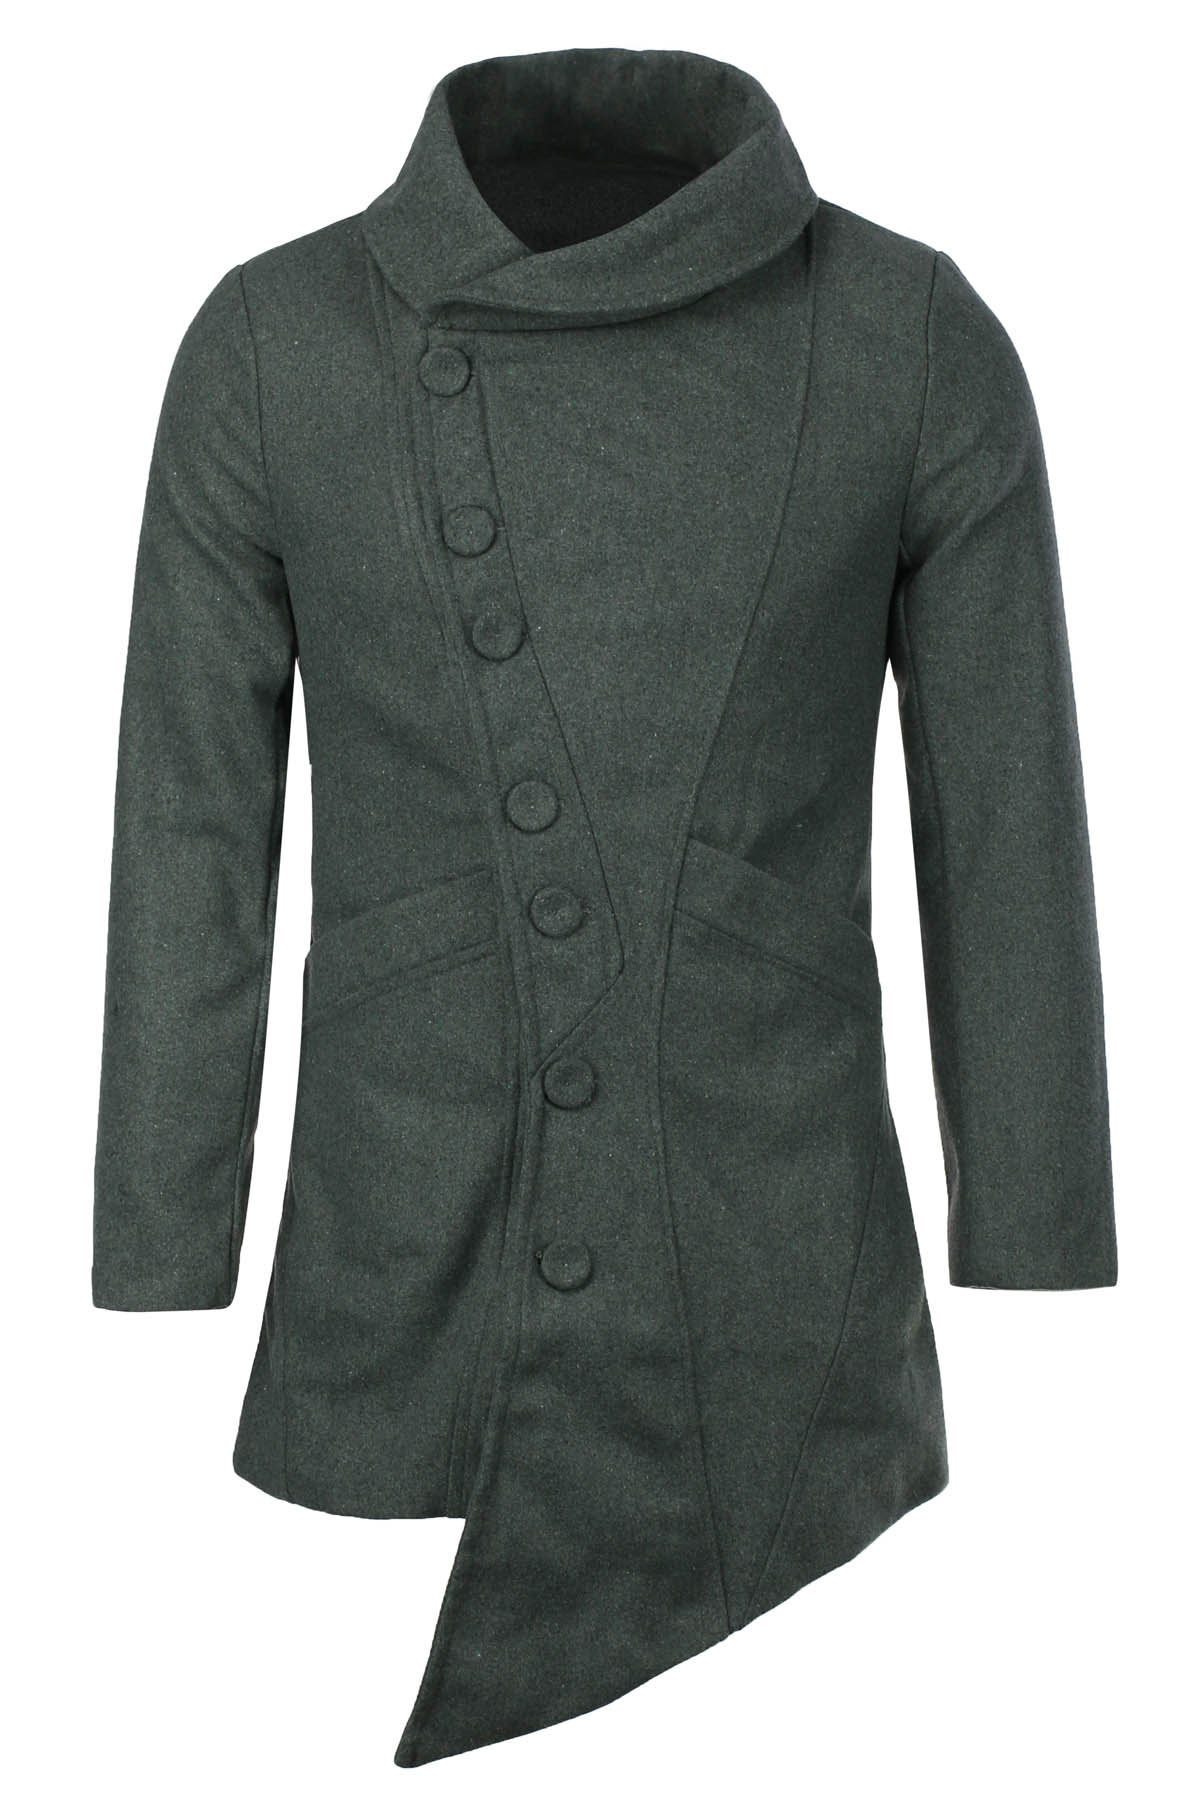 British Style Turn-down Collar Side Buttons Long Sleeves Woolen Coat For MenMen<br><br><br>Size: 2XL<br>Color: DEEP GRAY